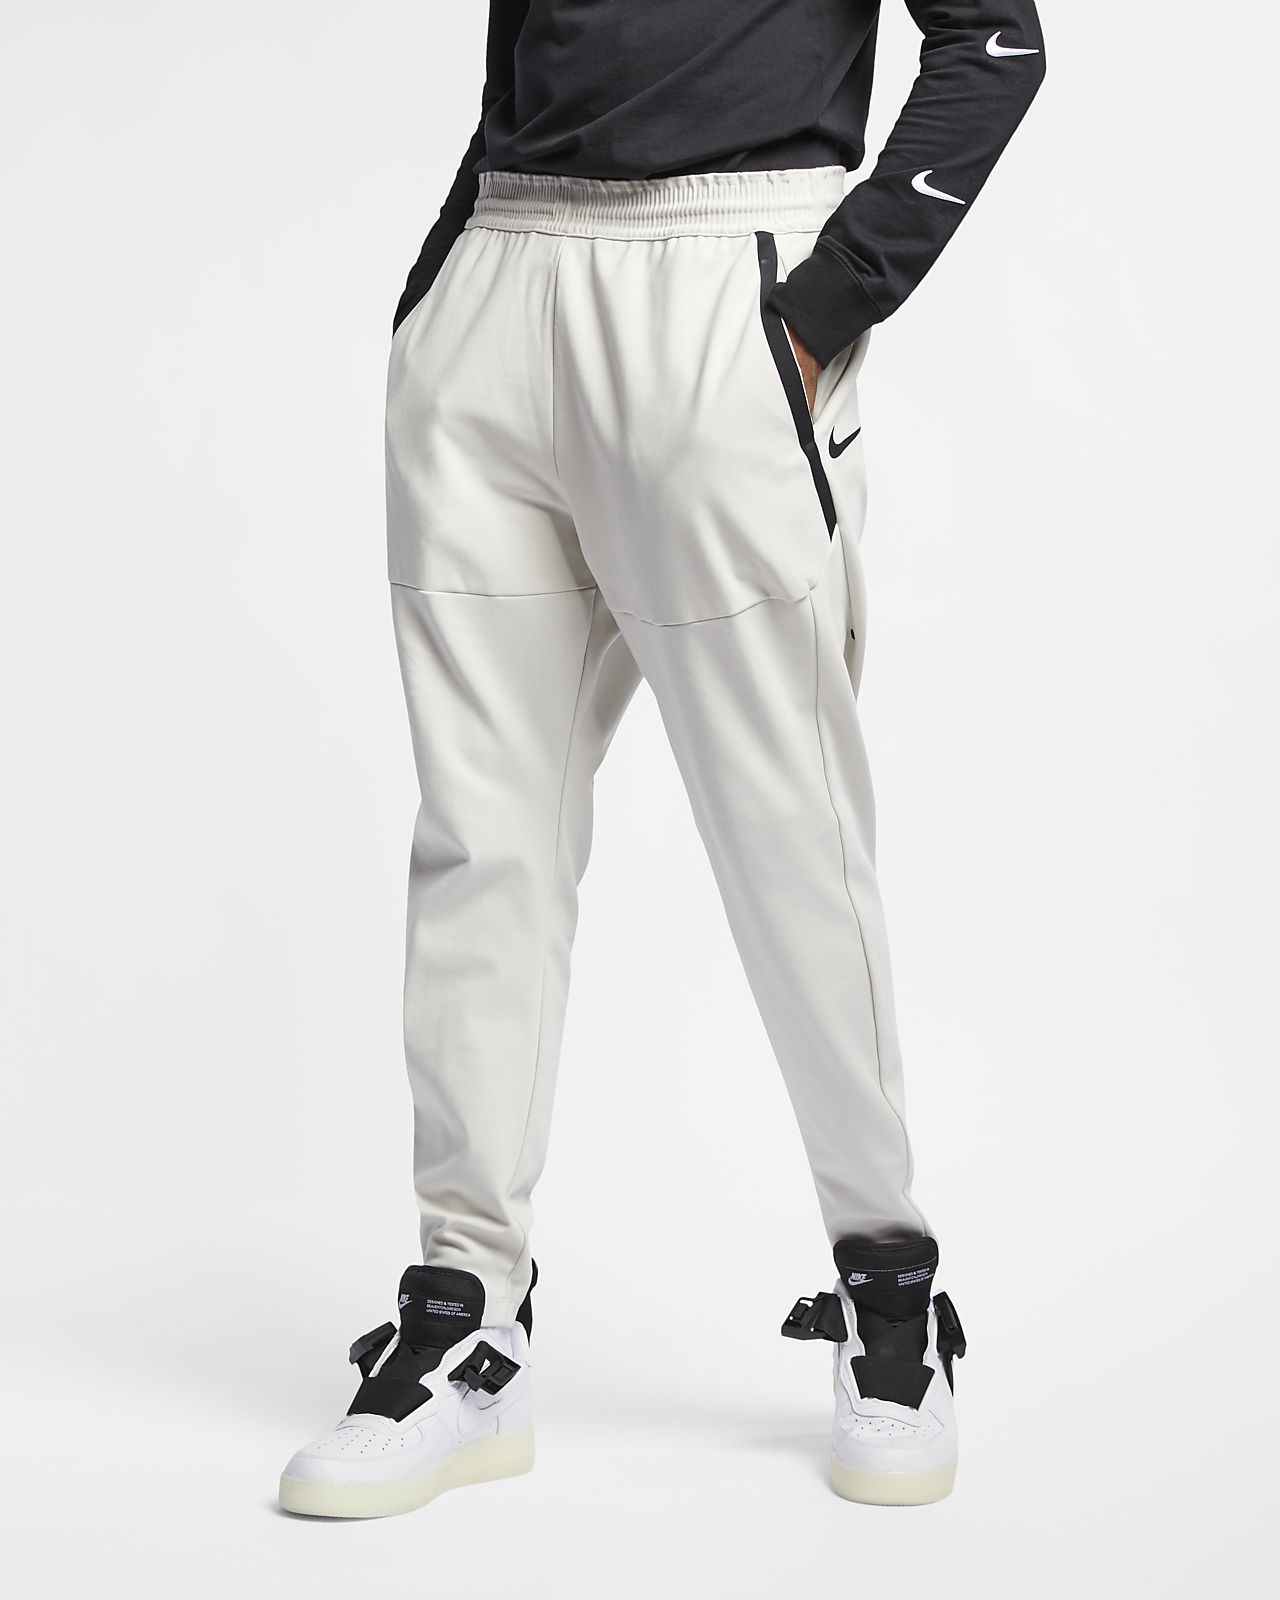 dee0a91fc Nike Sportswear Tech Pack Men's Knit Pants